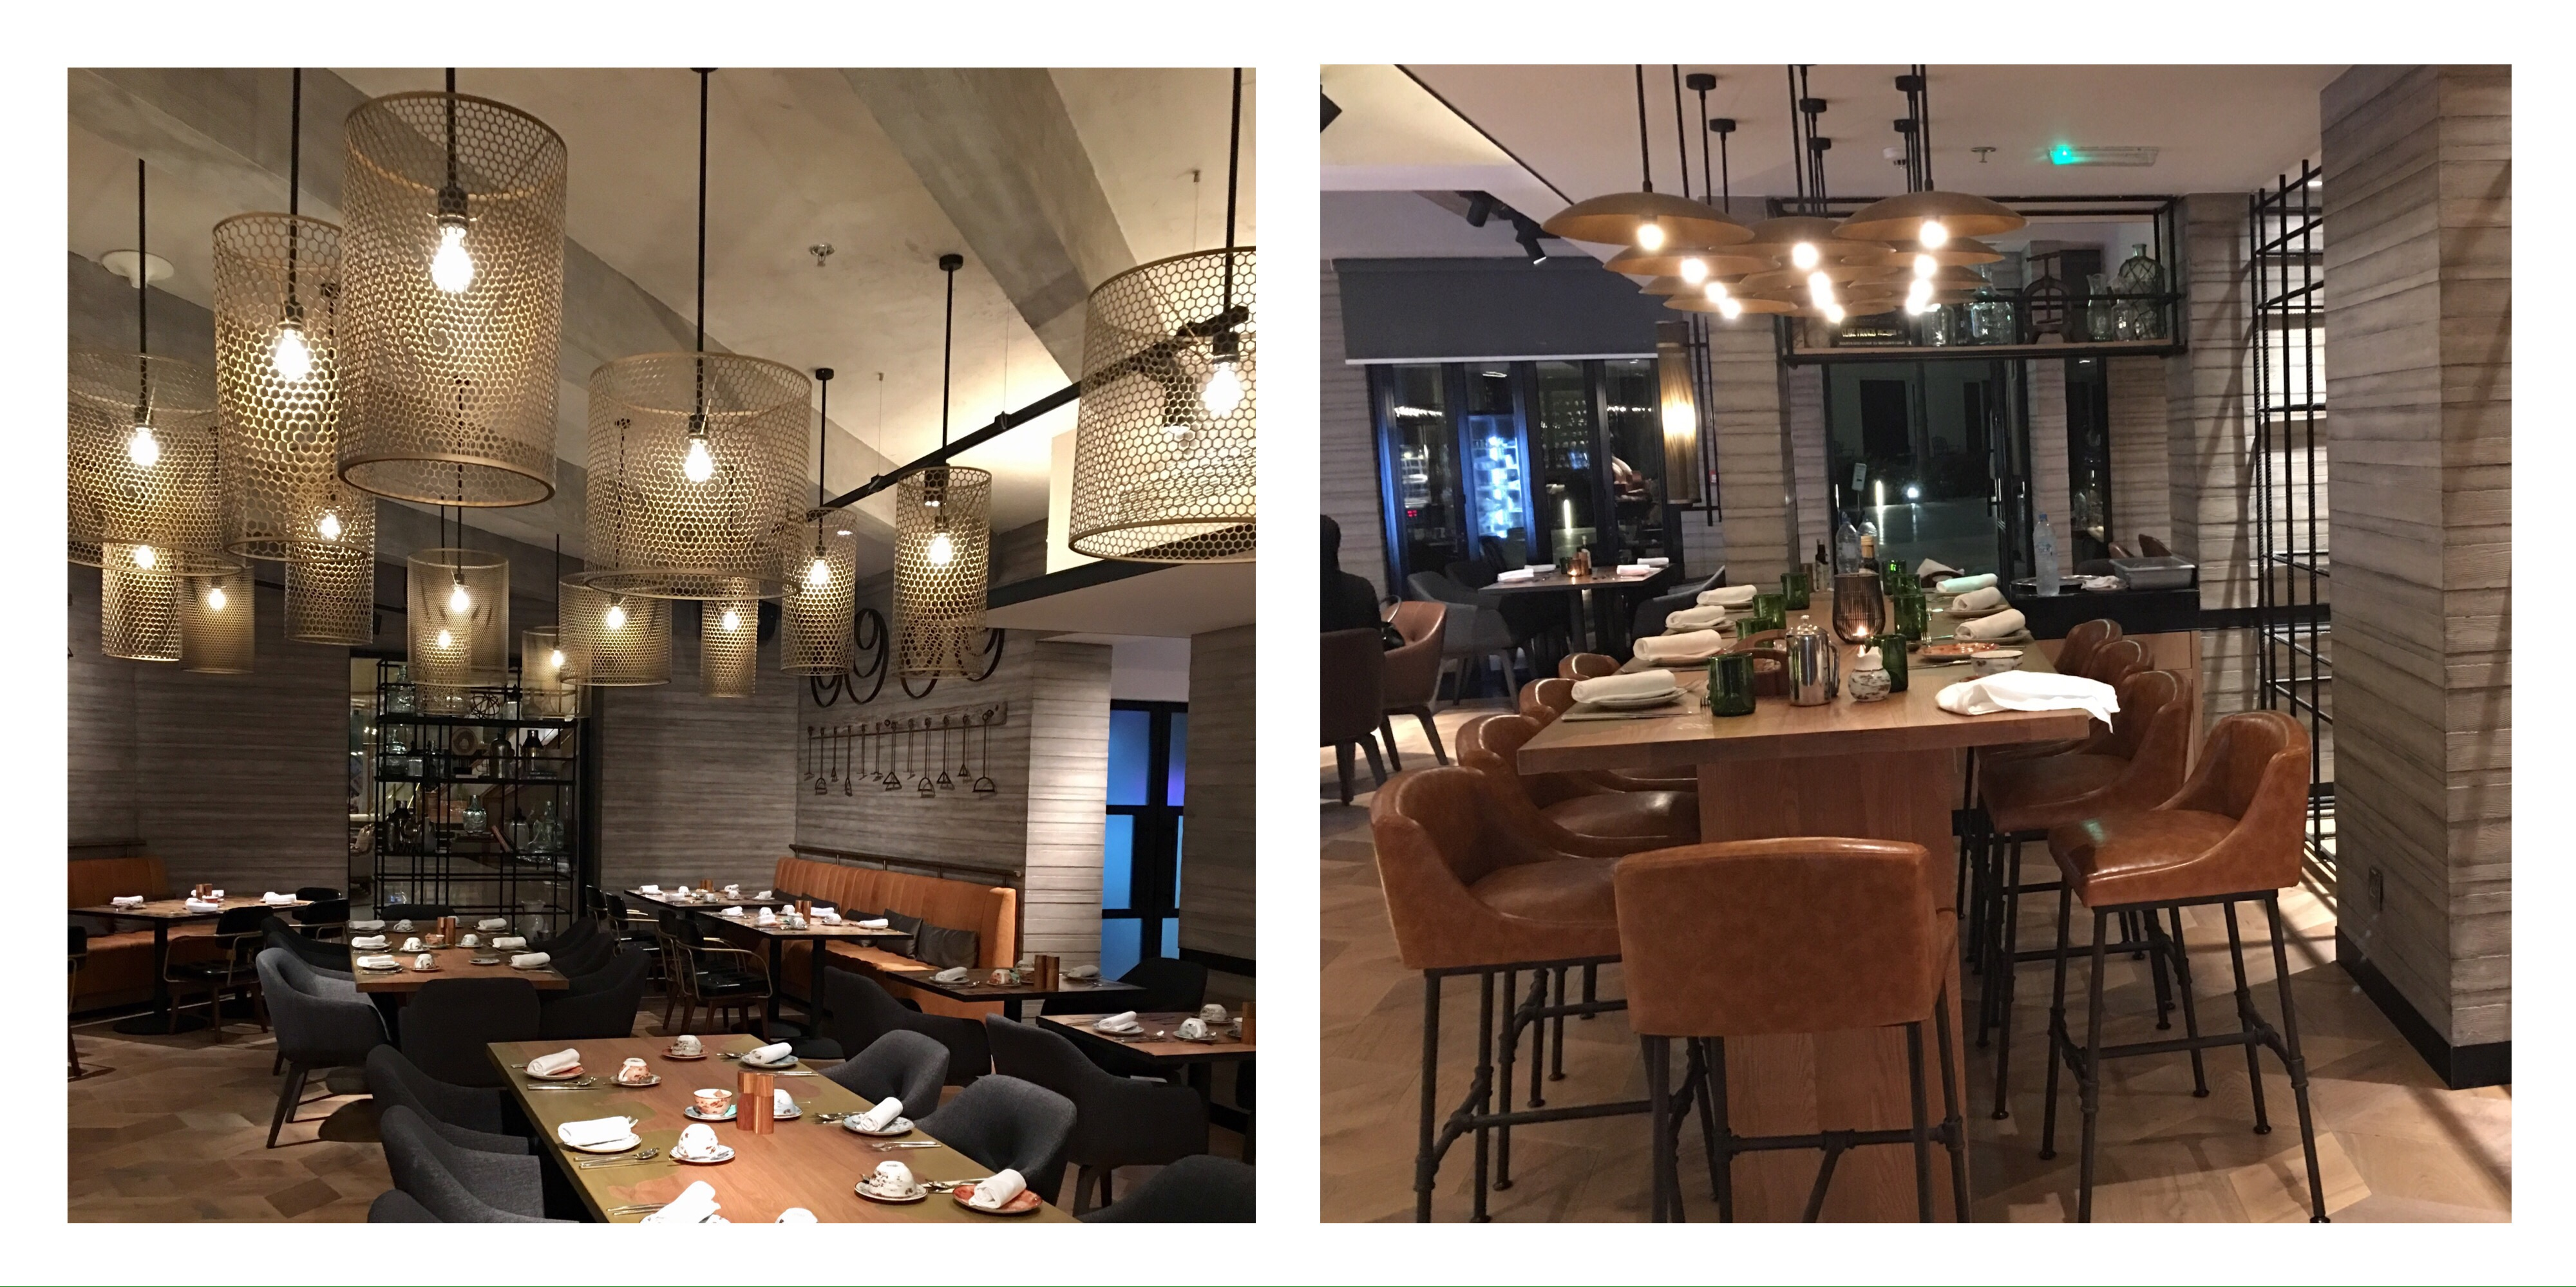 it is an all day dining restaurant that offers buffet for breakfast lunch and dinner they offer brunch on friday and saturday